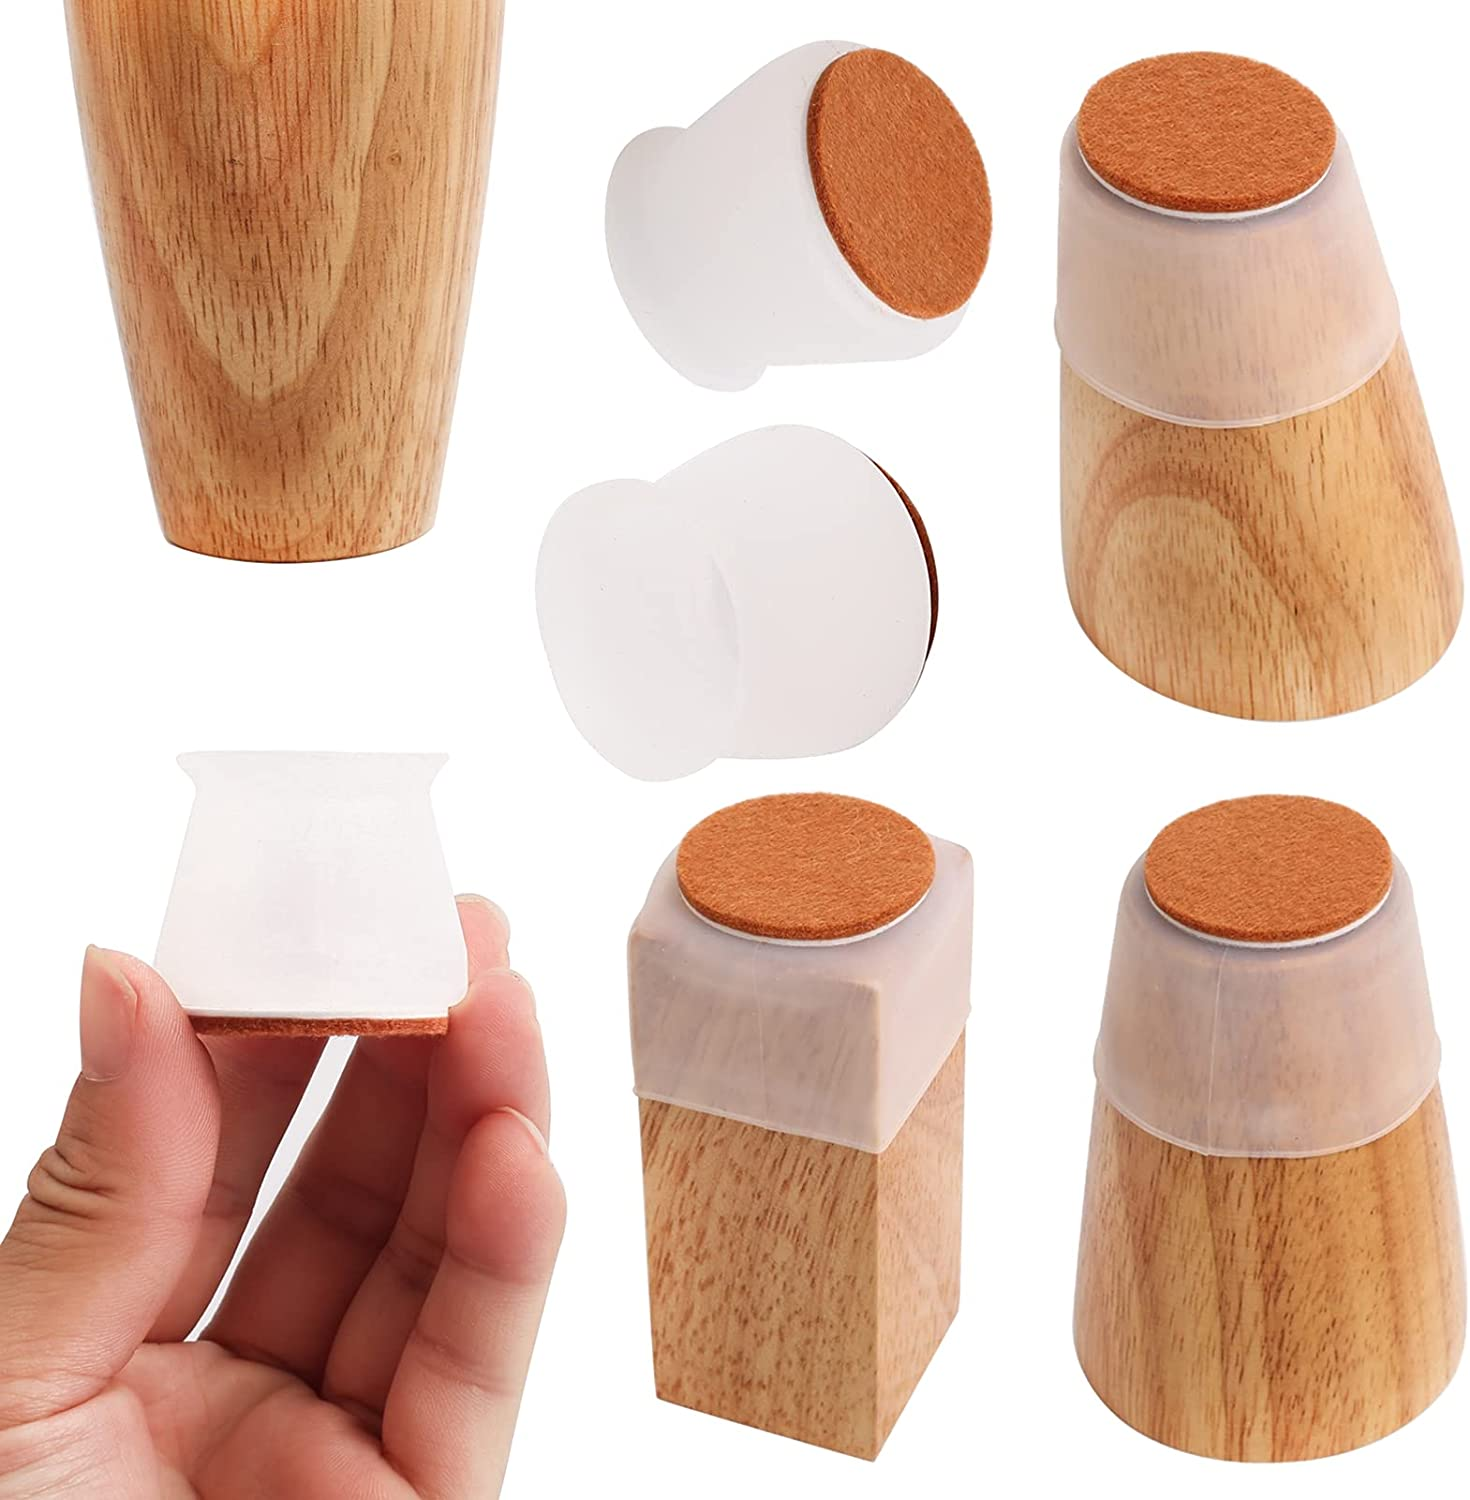 Chair Leg Cover Furniture Pads,Silicone Floor Protectors 24 PCS,Silicone Furniture Protection Cover with Cotton Pad, Floor Protectors Anti-Slip Chair Floor Pads for Round or Square